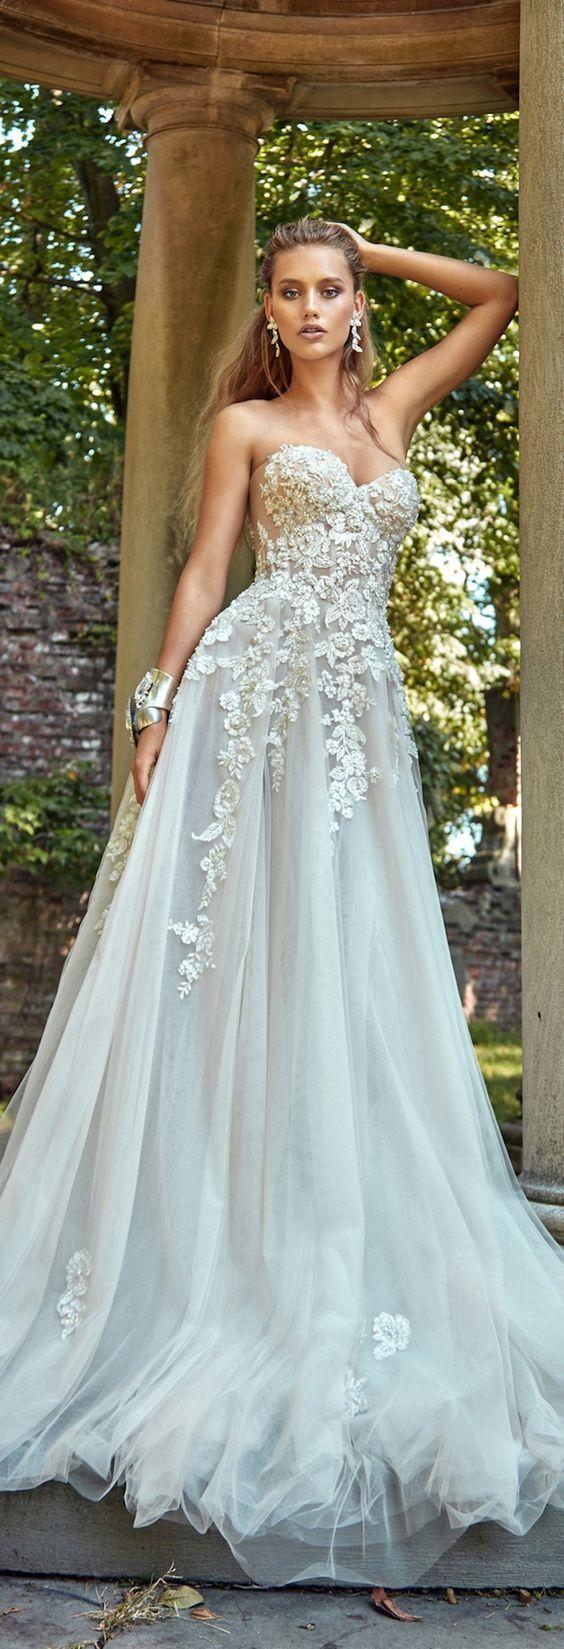 Hochzeit - 16 Beautiful Wedding Dresses For 2017